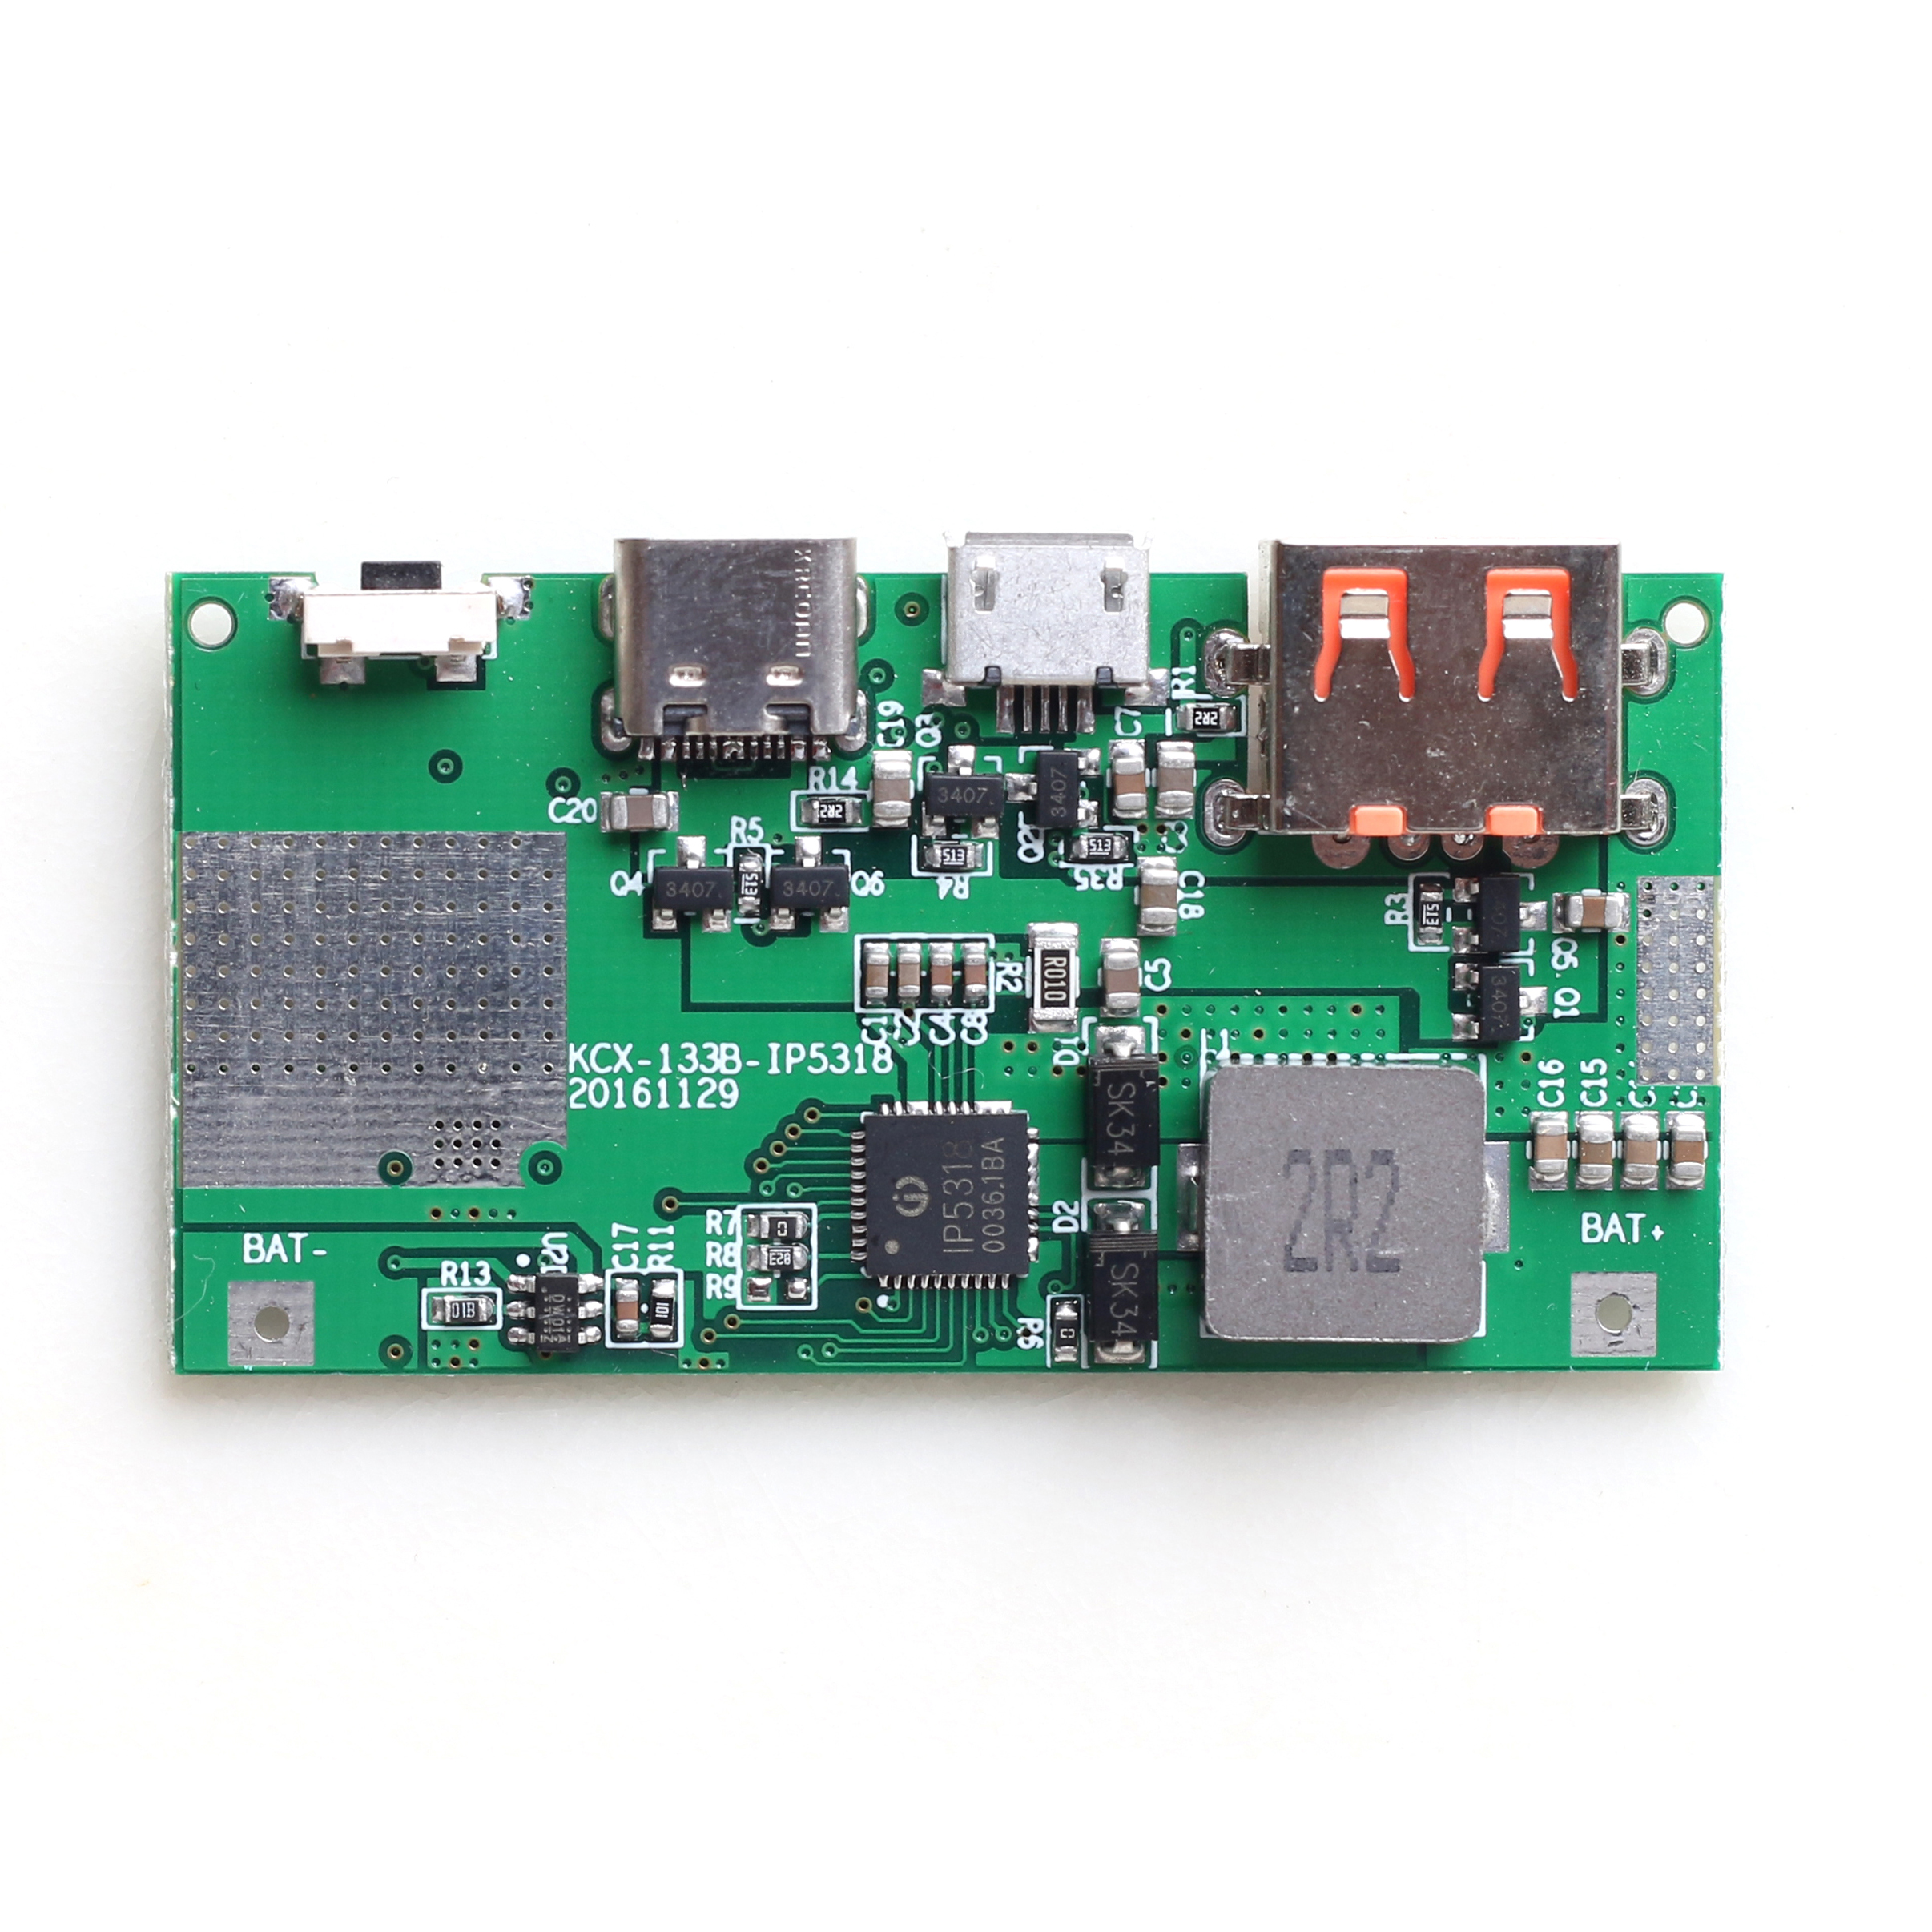 QC3.0 Fast Charge Boost Board 5V 9V 12V Bidirectional Fast Charge Boost Board Type-C